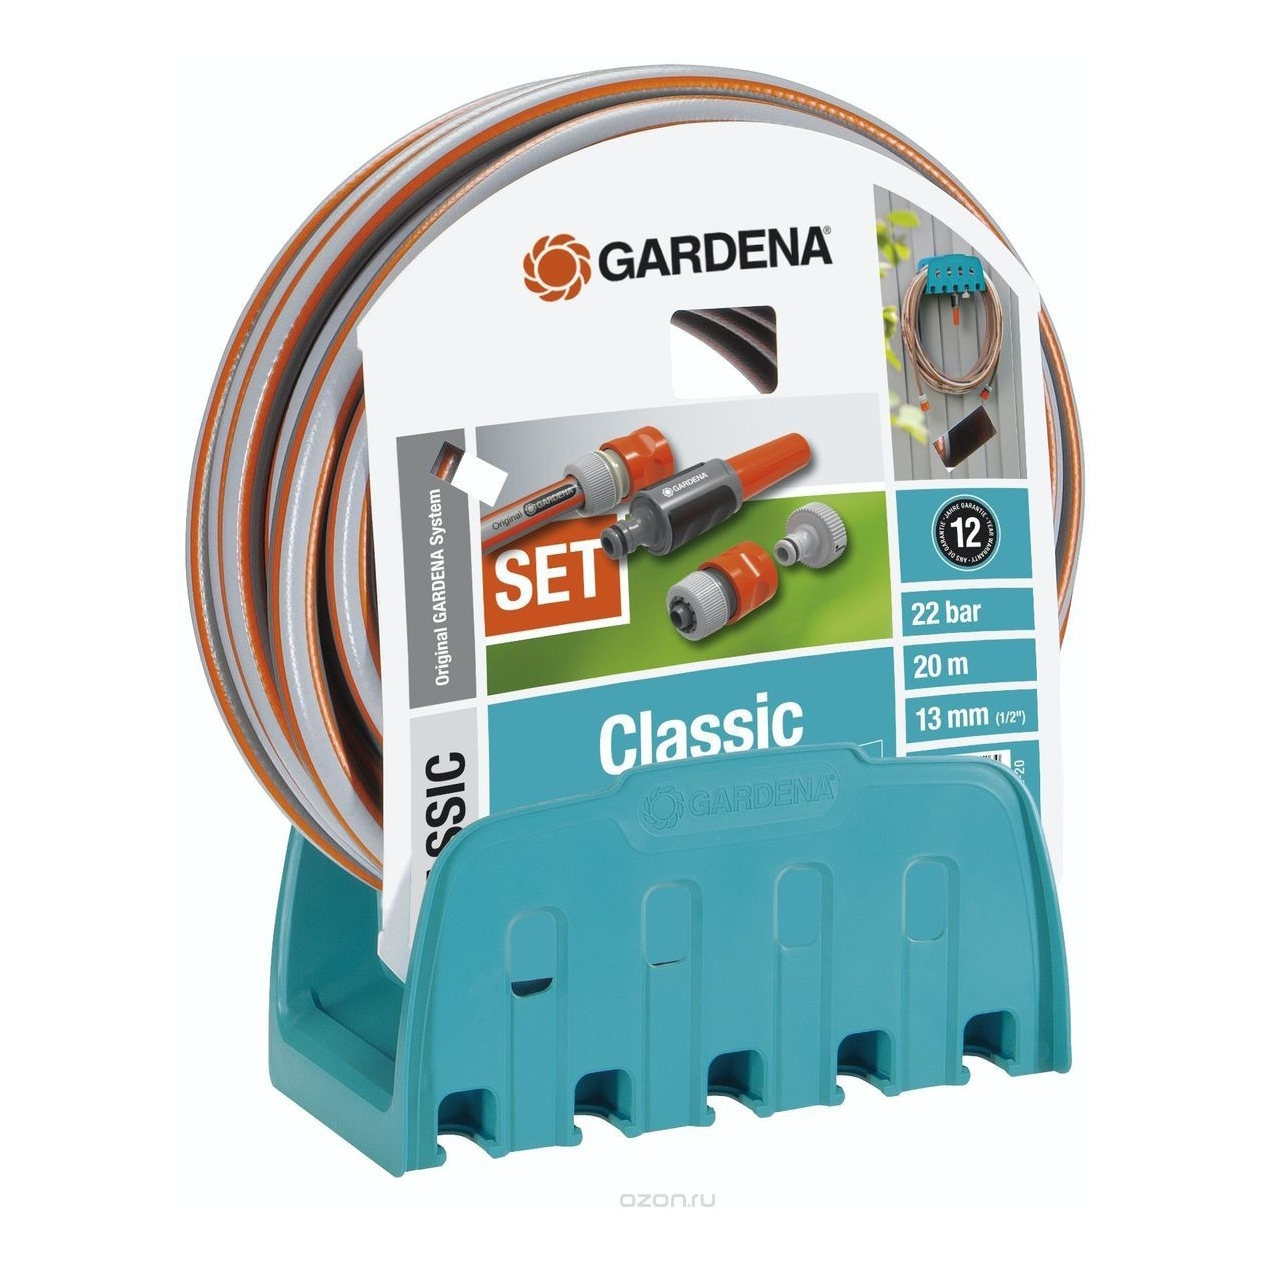 Set поливочный GARDENA 18005-20.000.00 (Hose 20 meters 13mm 1/2 inch, wall bracket, connector with of hitchhiking) connector gardena t shaped 13 mm home